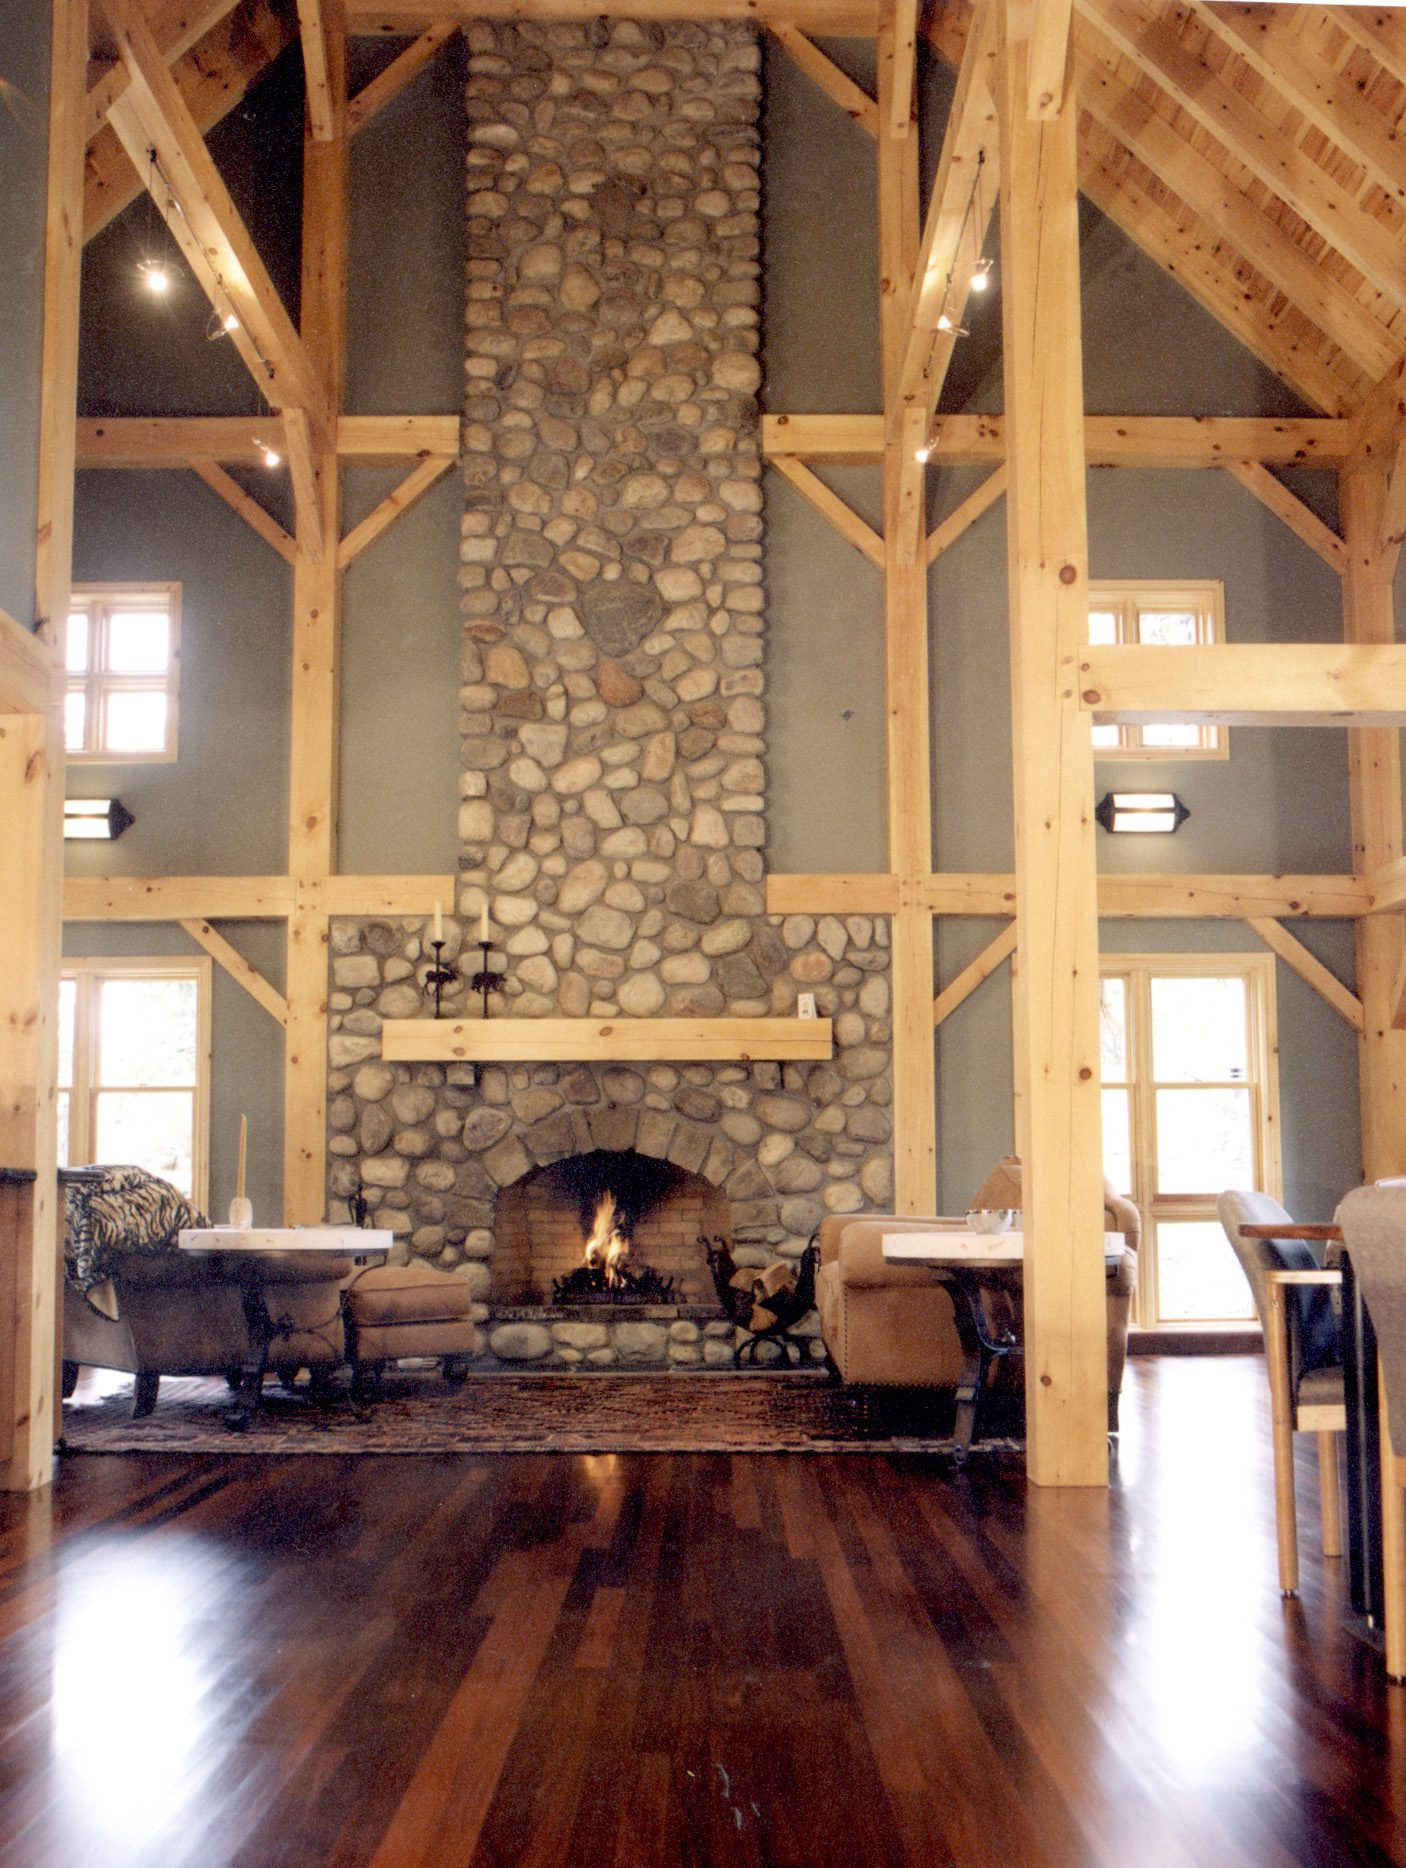 Normerica Timber Frames, Commercial Projects, Buffalo Mountain Lodge, Hotel, Banff, Canada, Interior, Fireplace